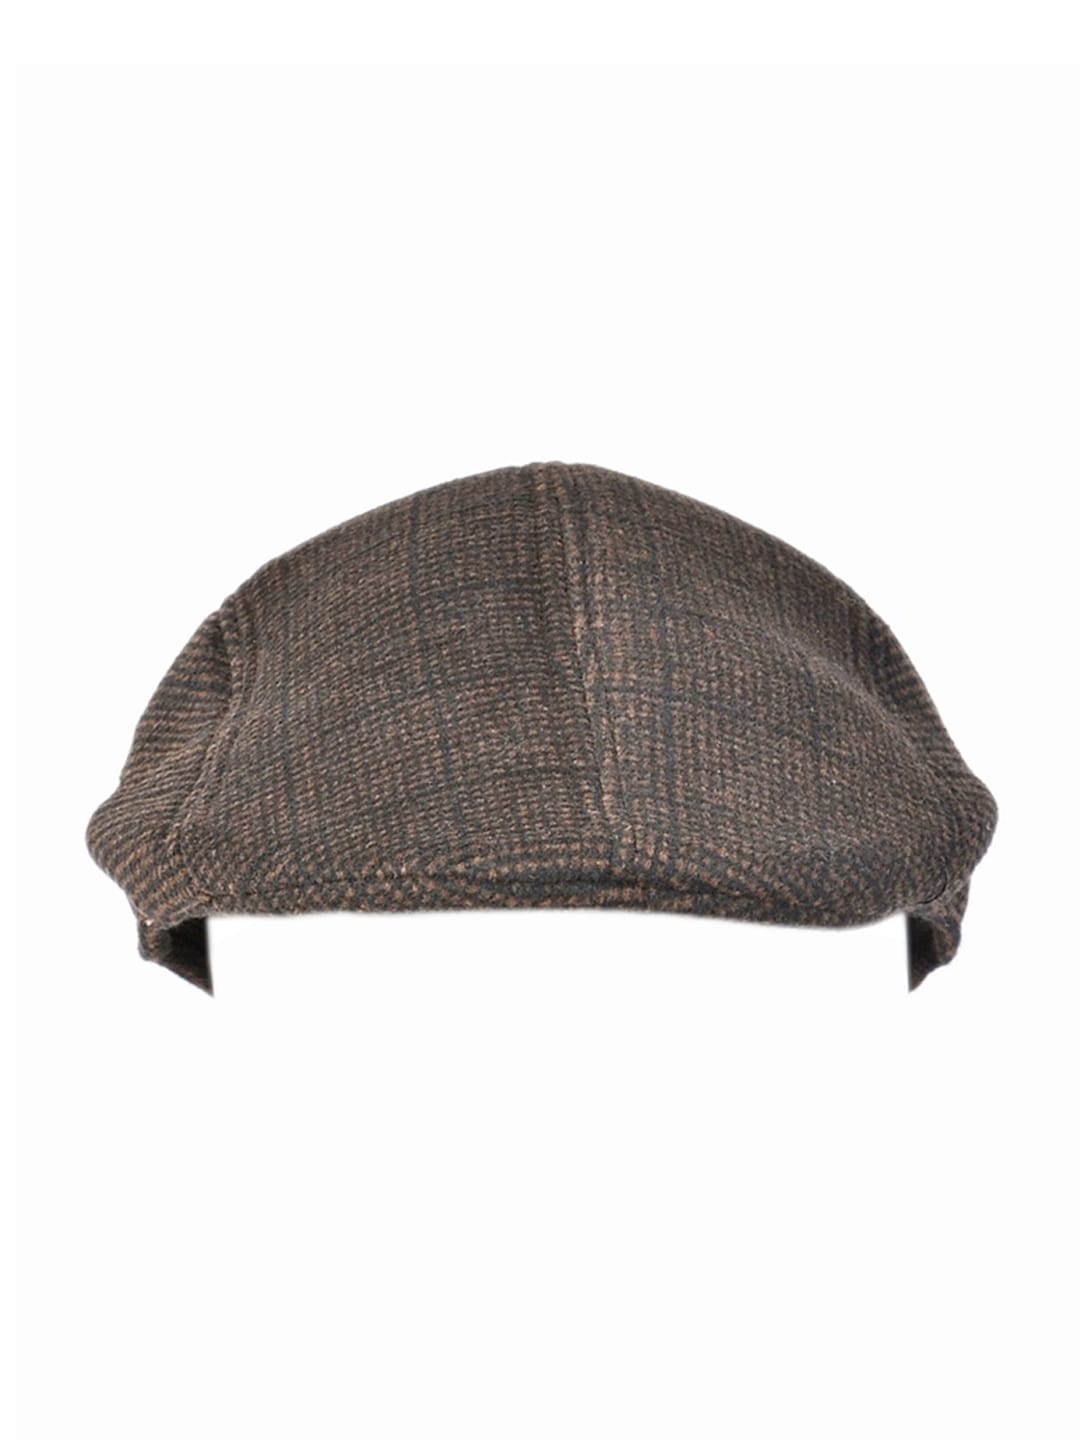 Alvaro Castagnino Men Brown Ascot Cap